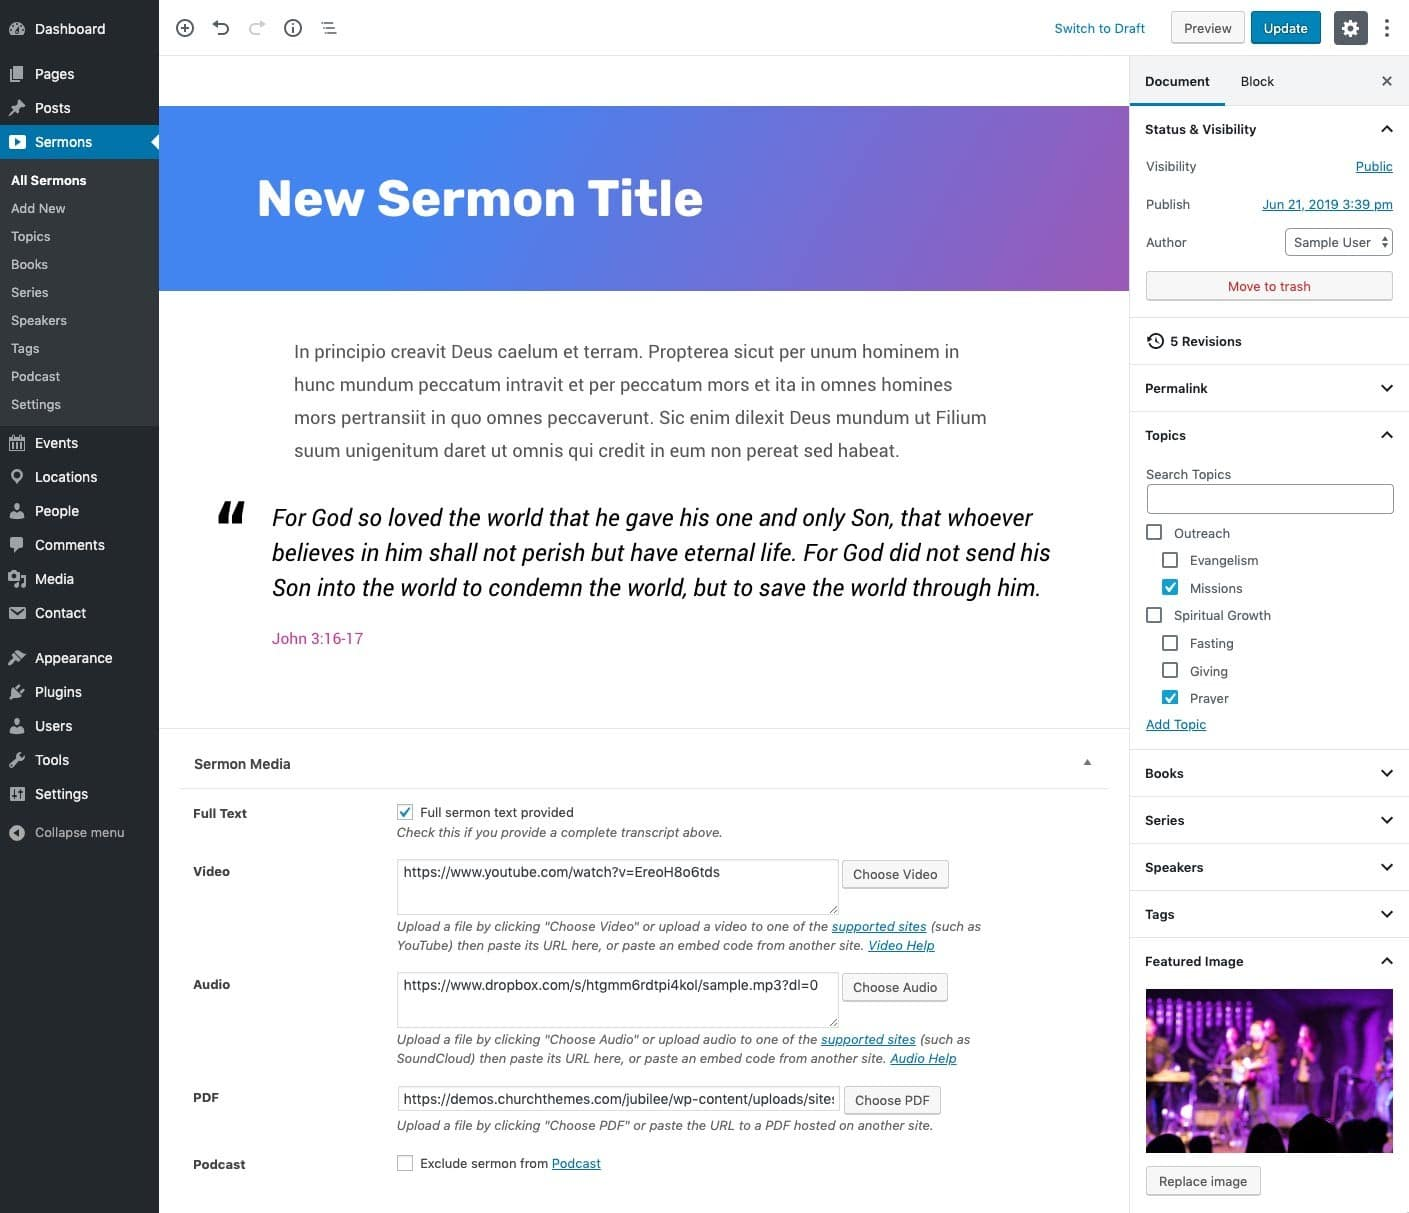 Church website with WordPress